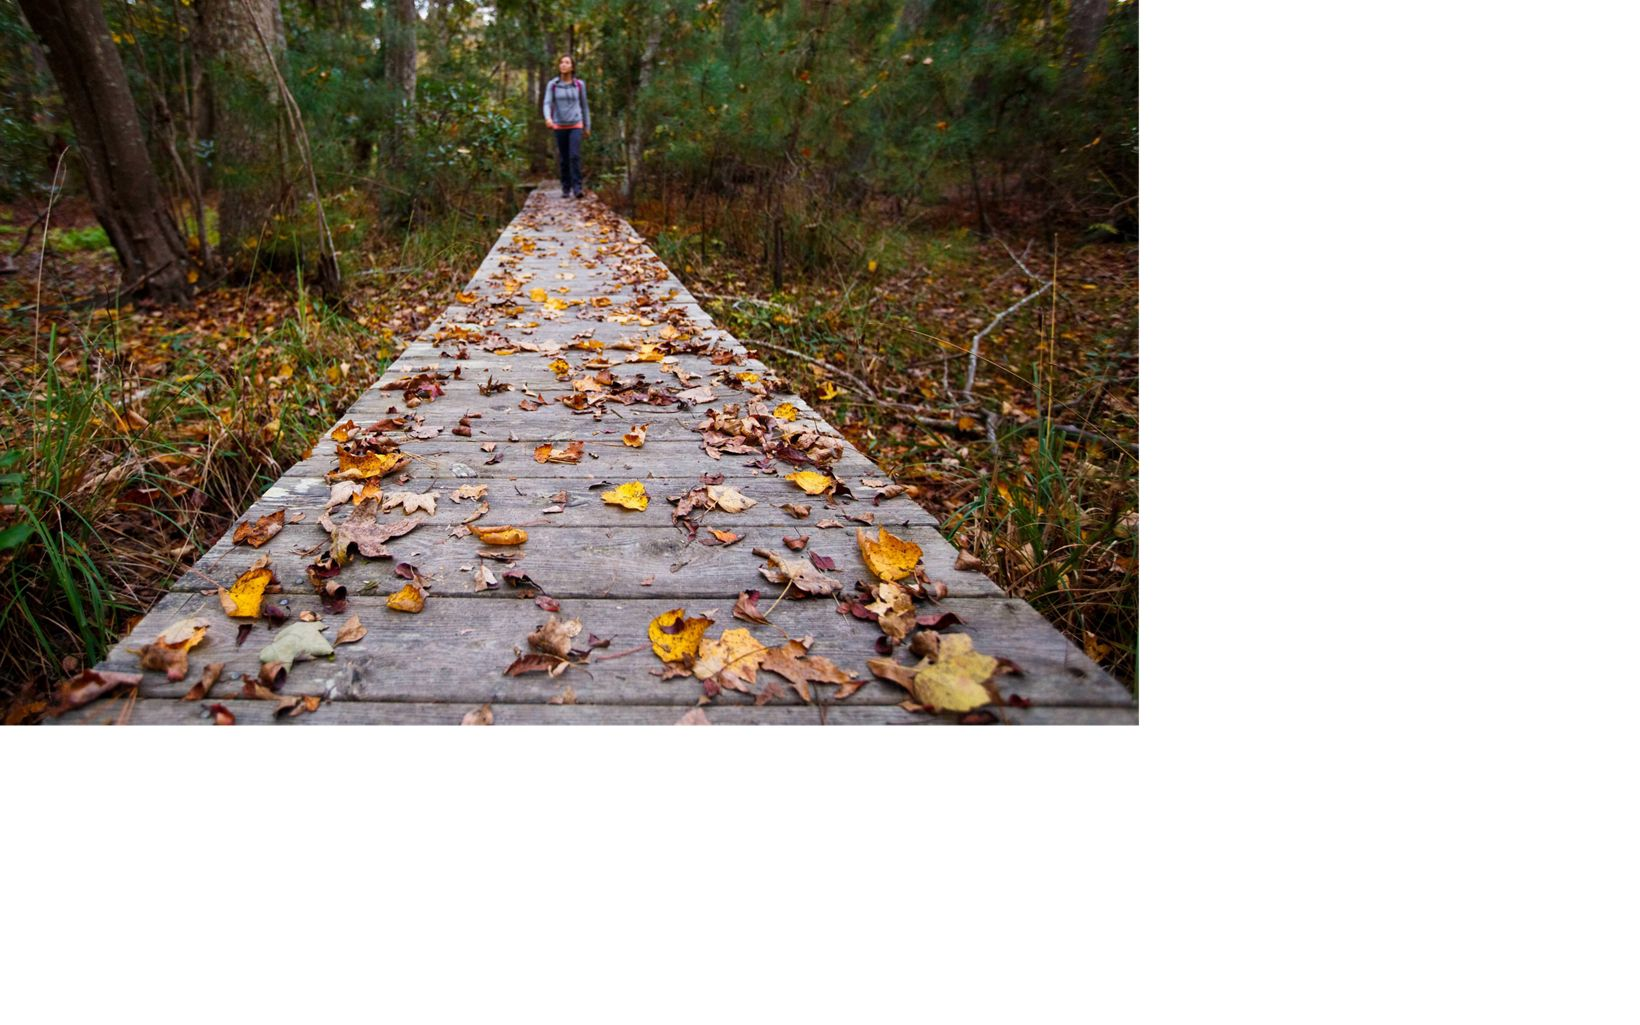 Bekah Herndon hikes amidst colorful fallen leaves on a boardwalk along the Blueberry Ridge Trail in the Nags Head Woods Preserve © Ben Herndon